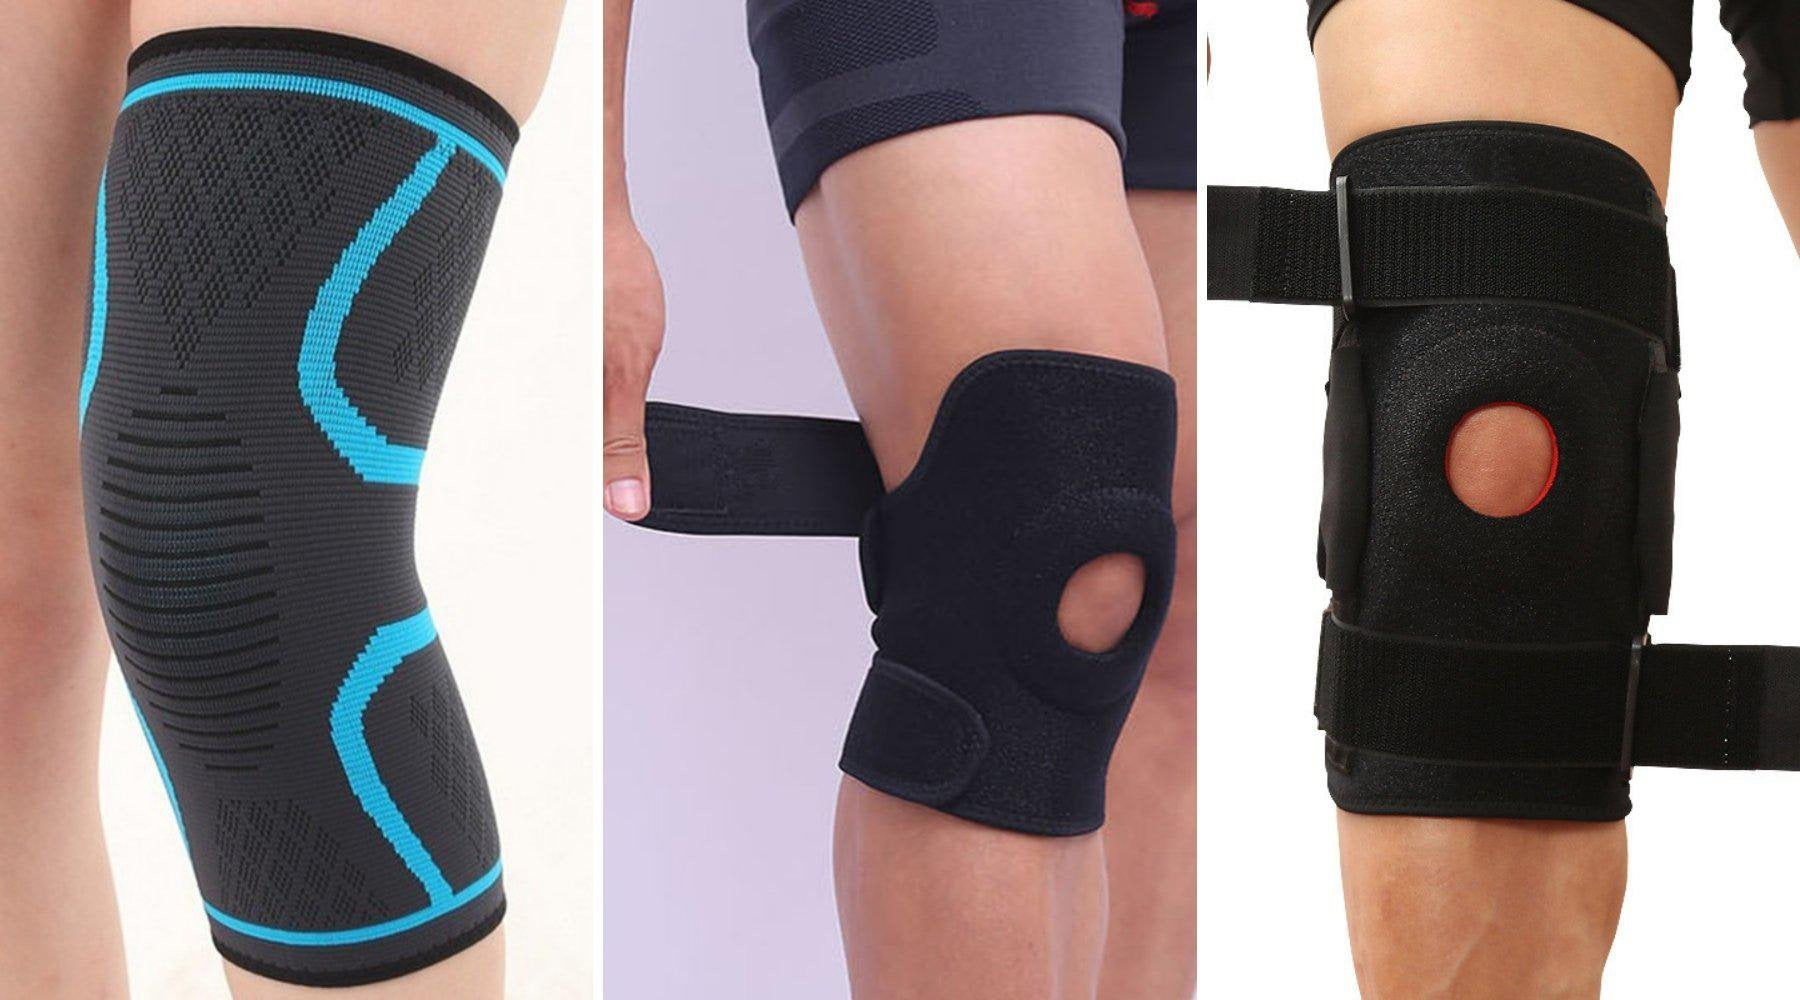 Choose Your Knee Support